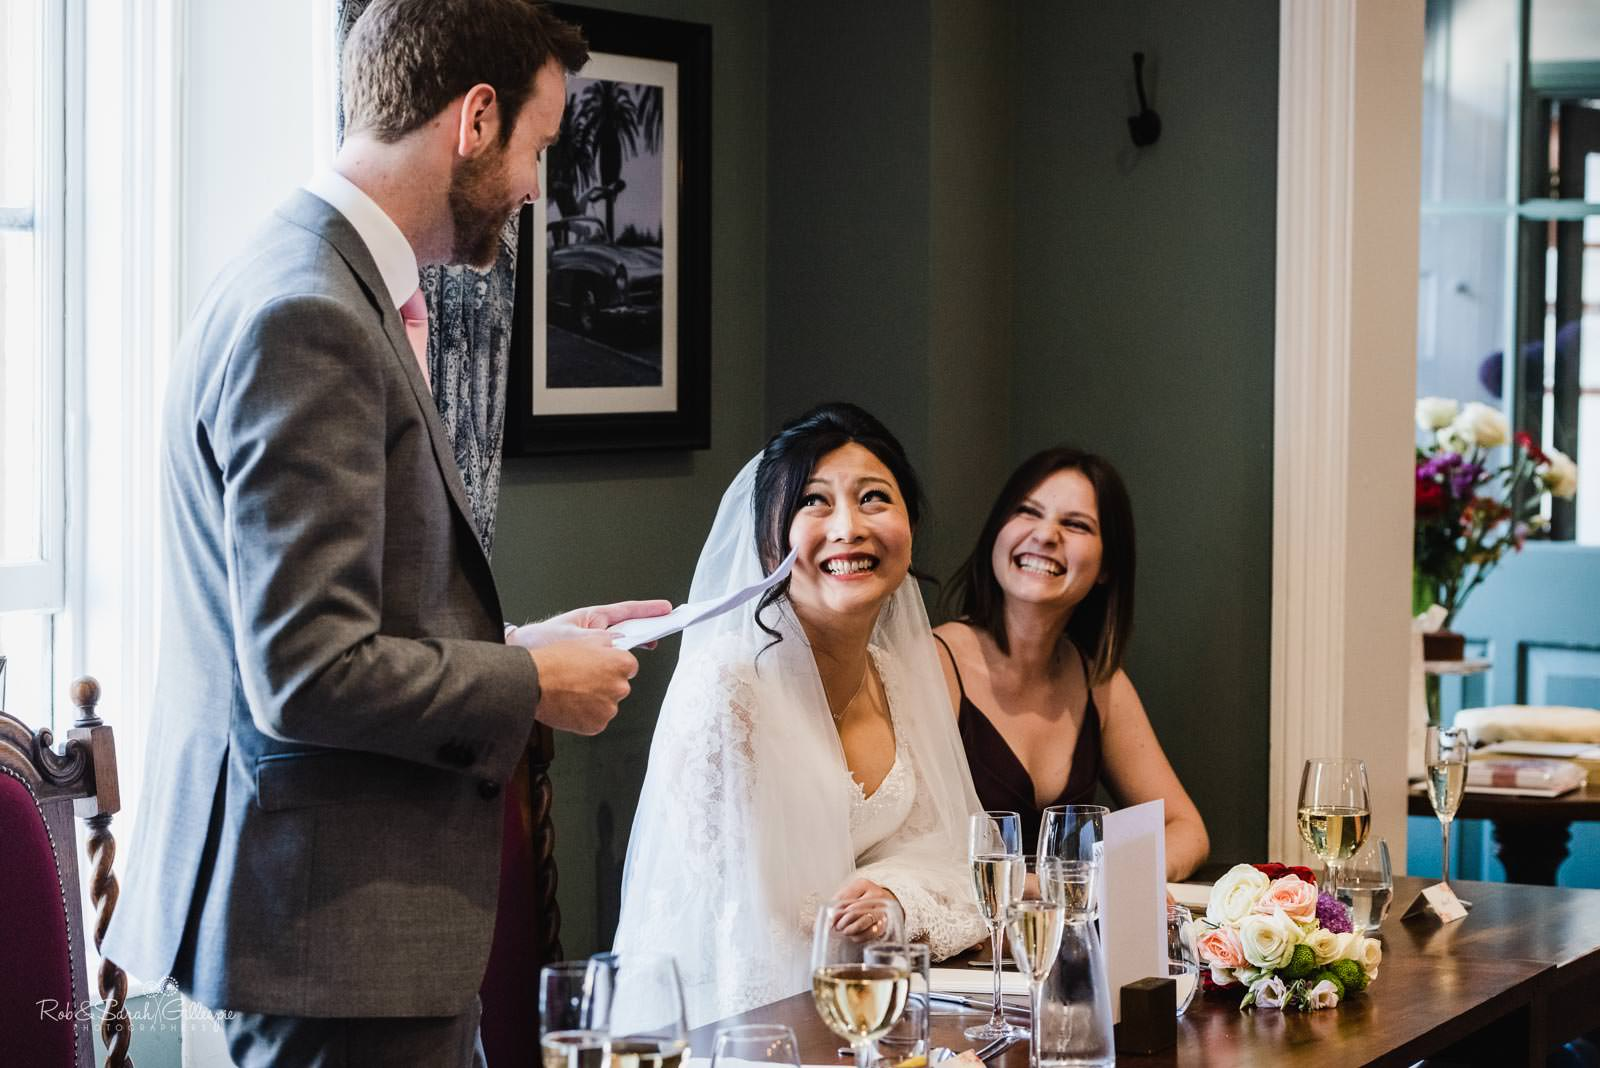 Wedding speeches at The Townhouse in Stratford upon Avon